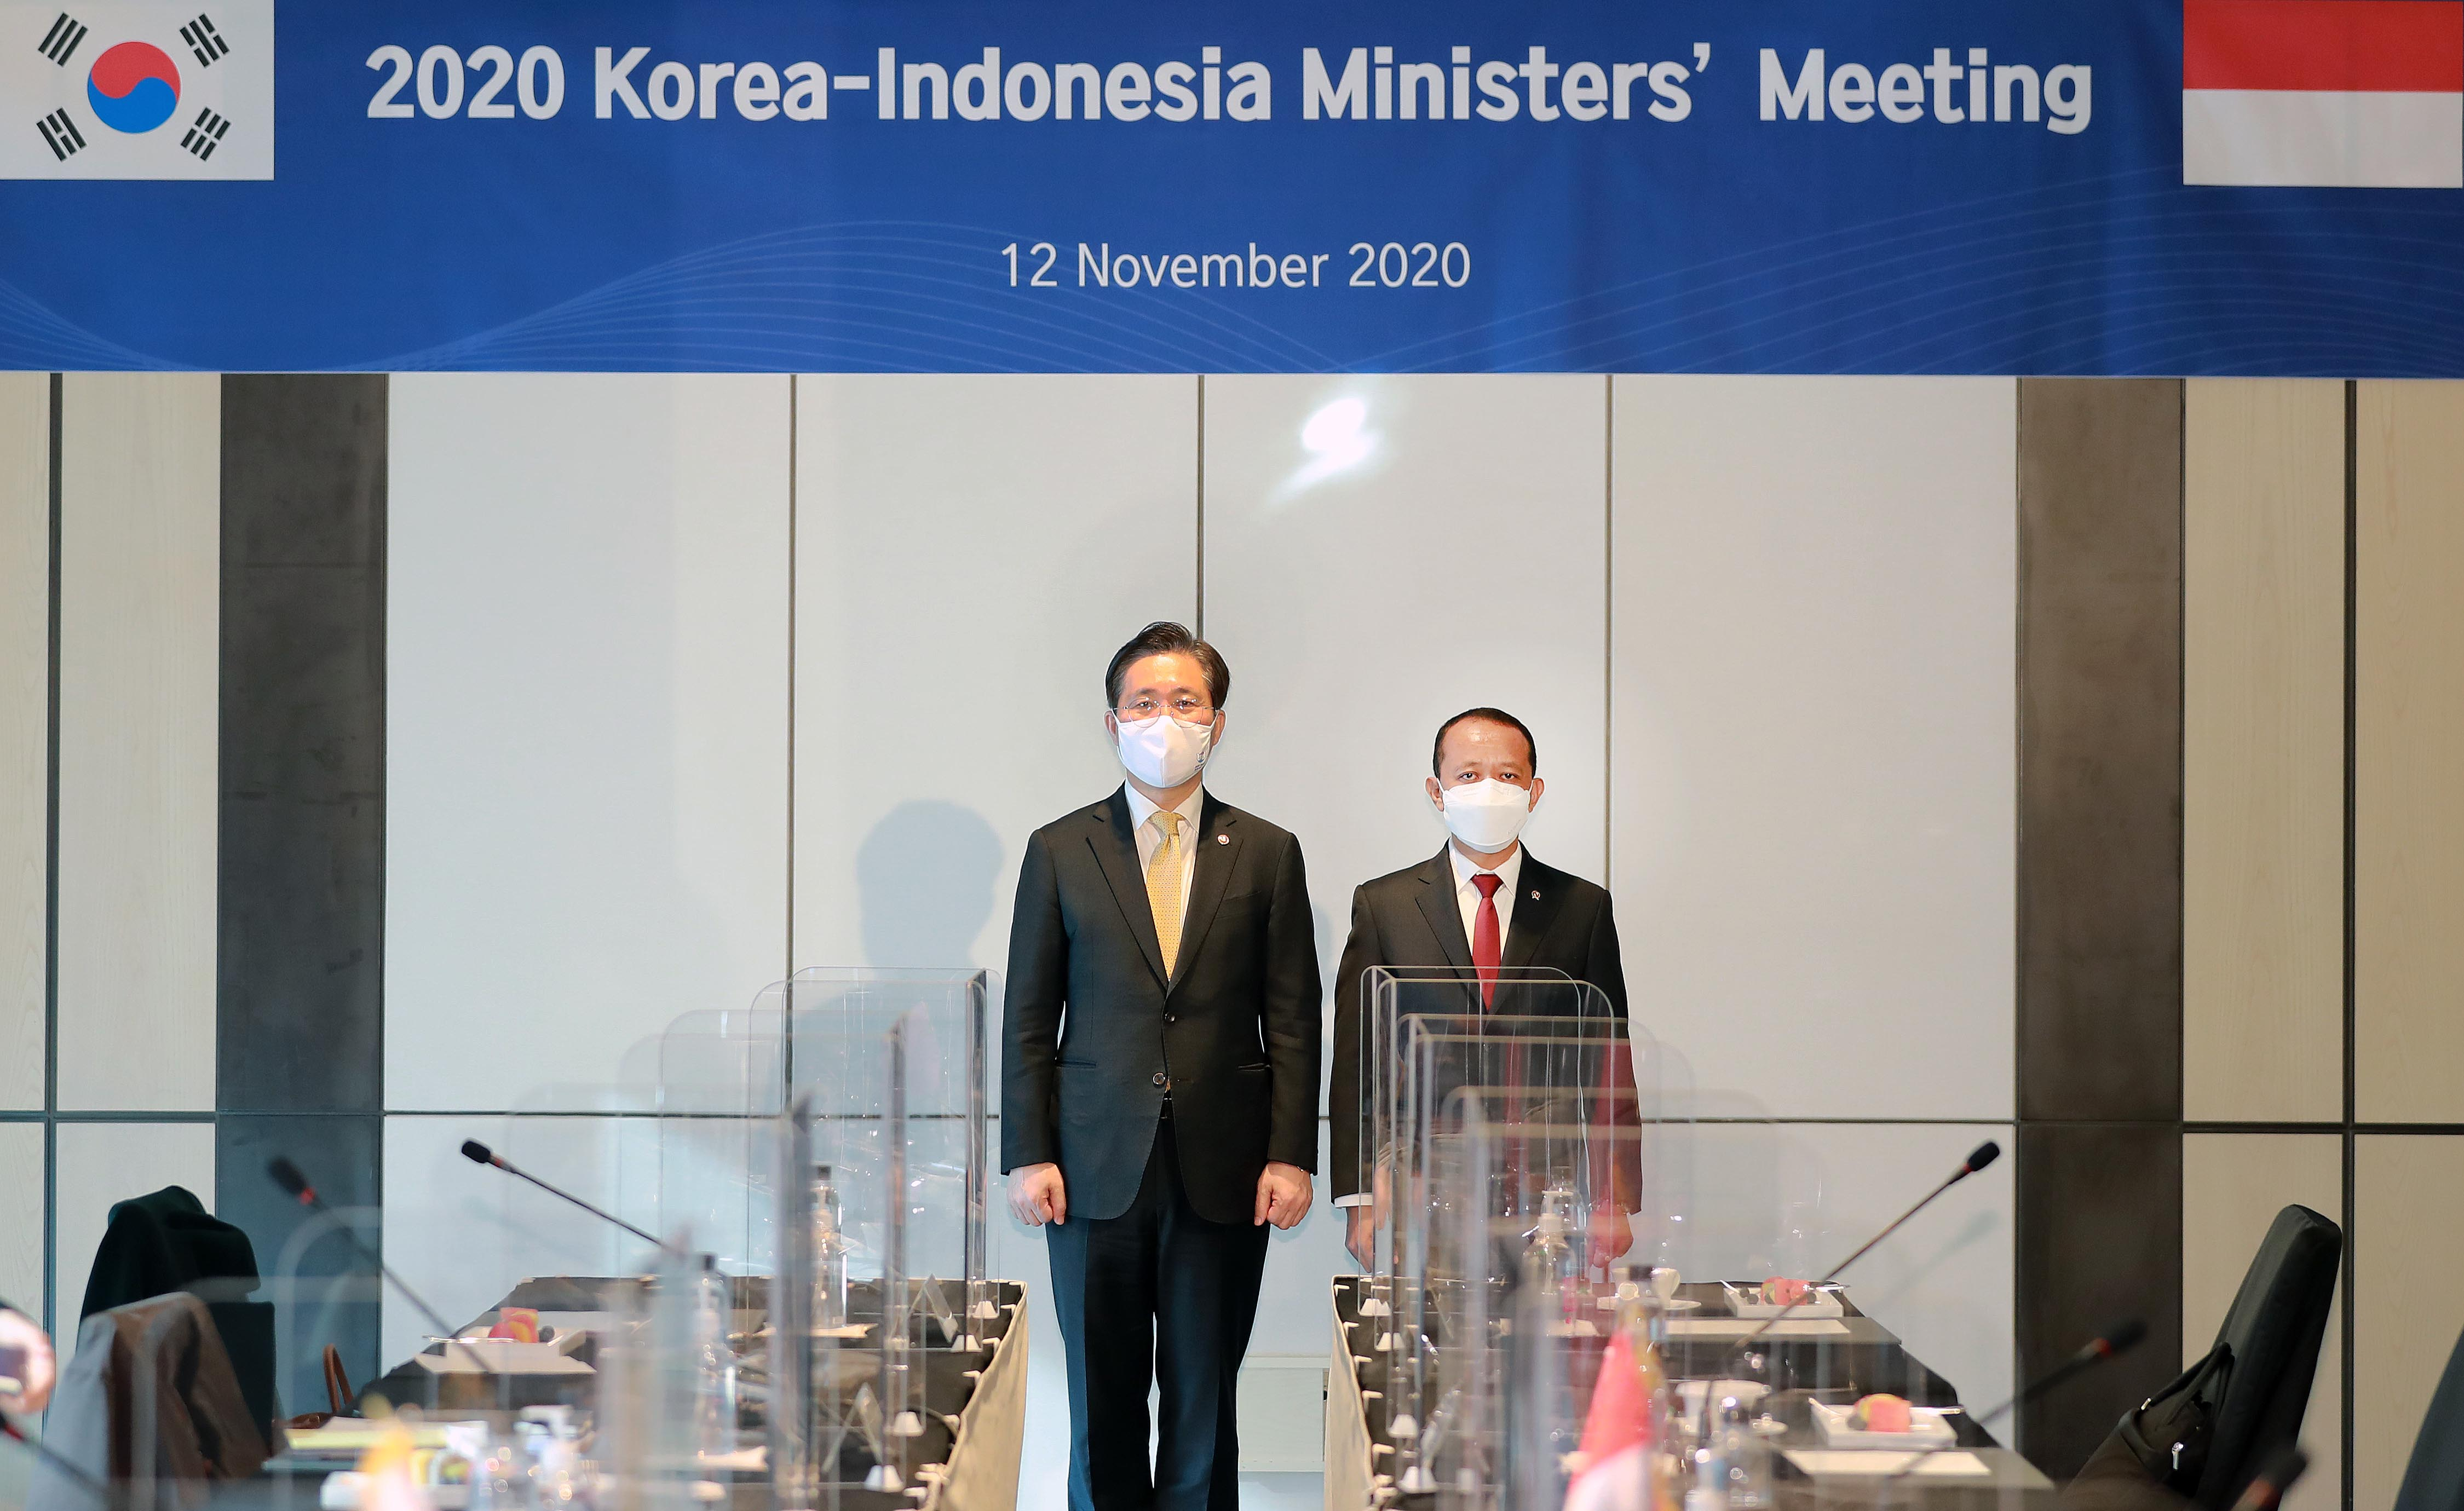 Korea, Indonesia agree to work together to overcome economic challenges amid pandemic